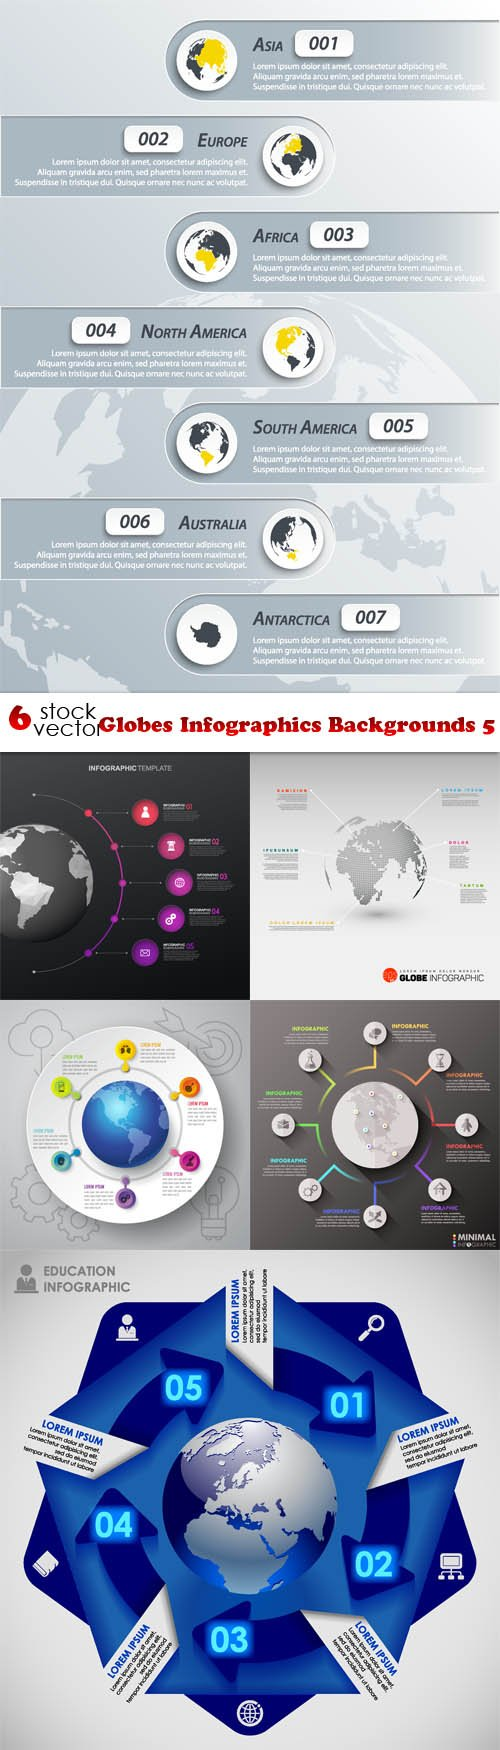 Vectors - Globes Infographics Backgrounds 5